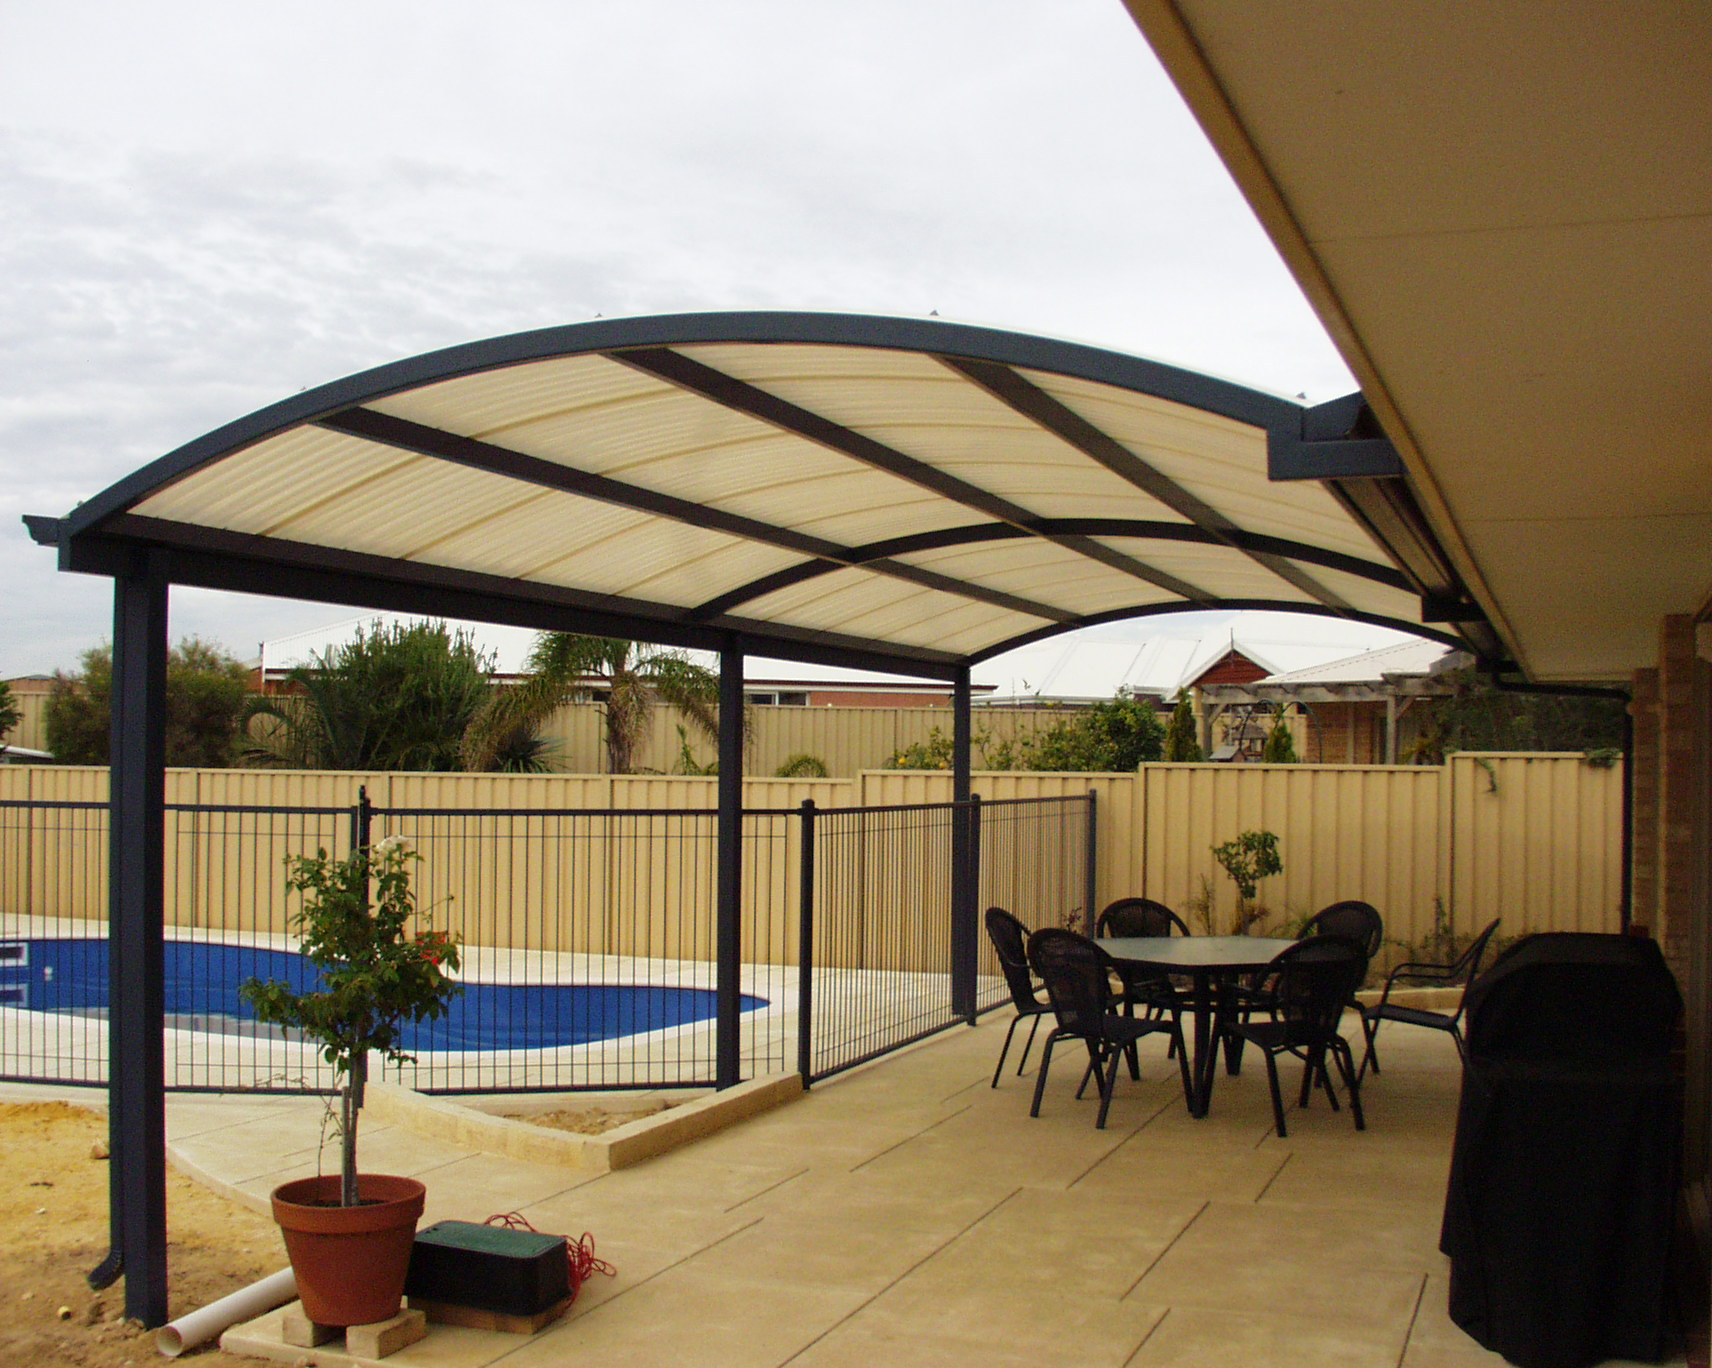 Backyard Patio Covers: From Usefulness To Style - HomesFeed on Backyard Patio Cover Ideas  id=88729